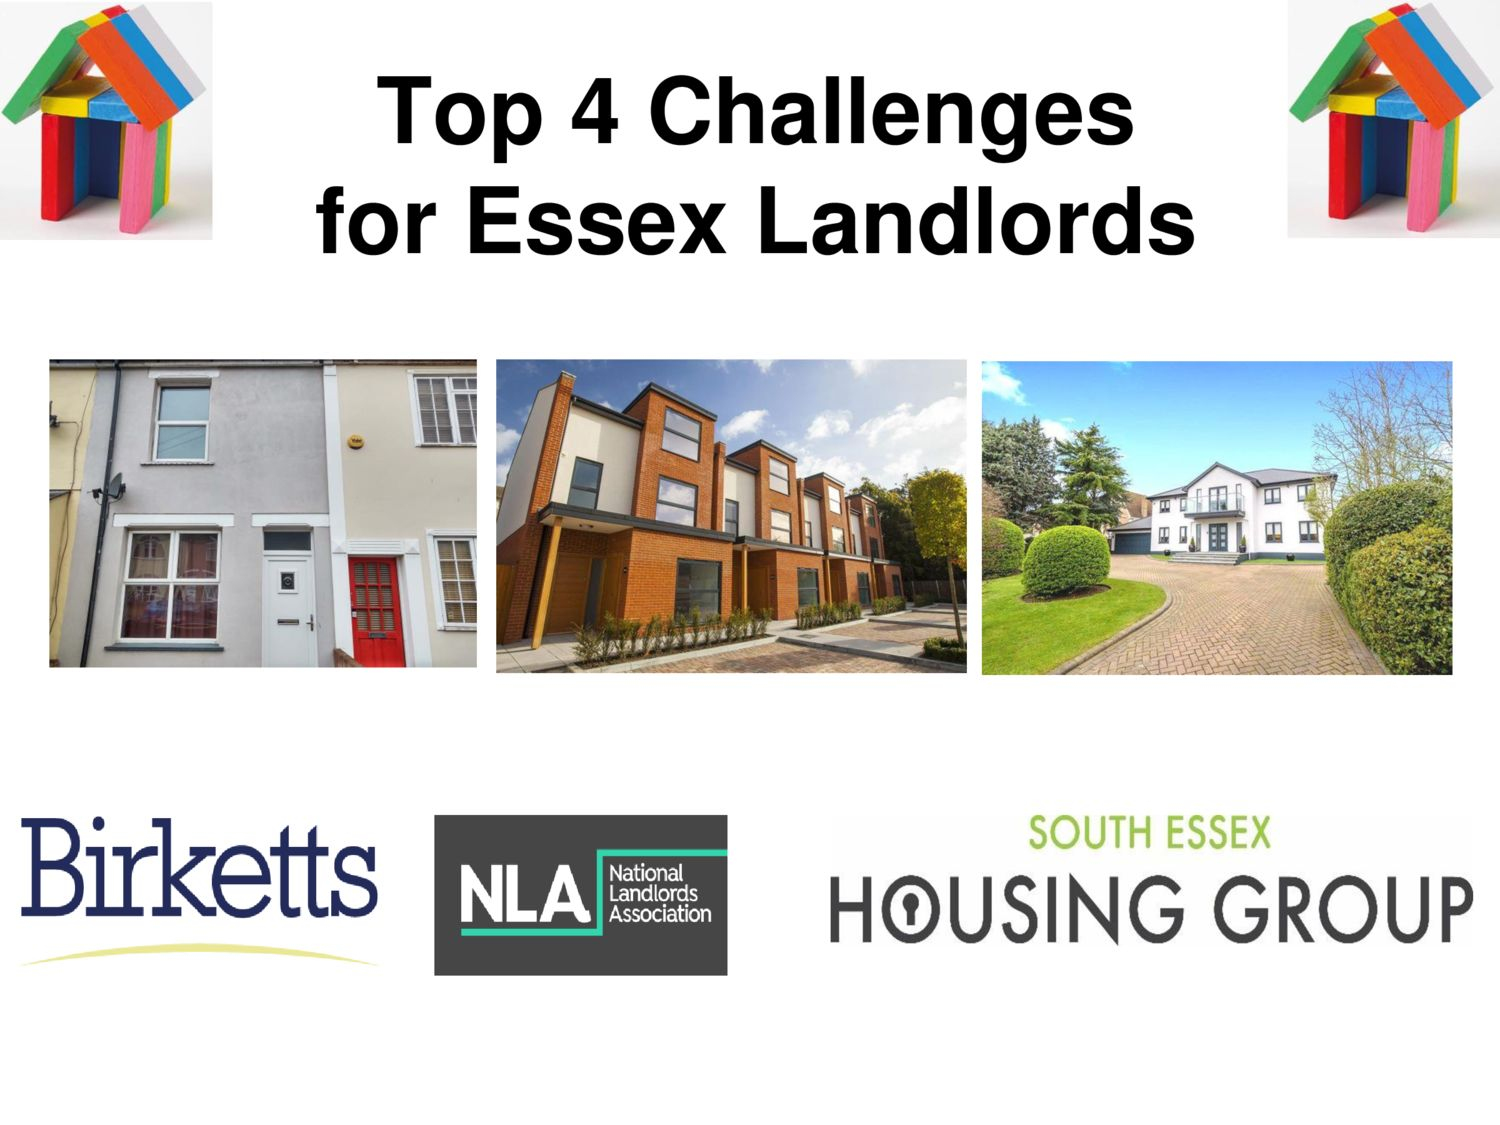 Top 4 Challenges for Essex Landlords